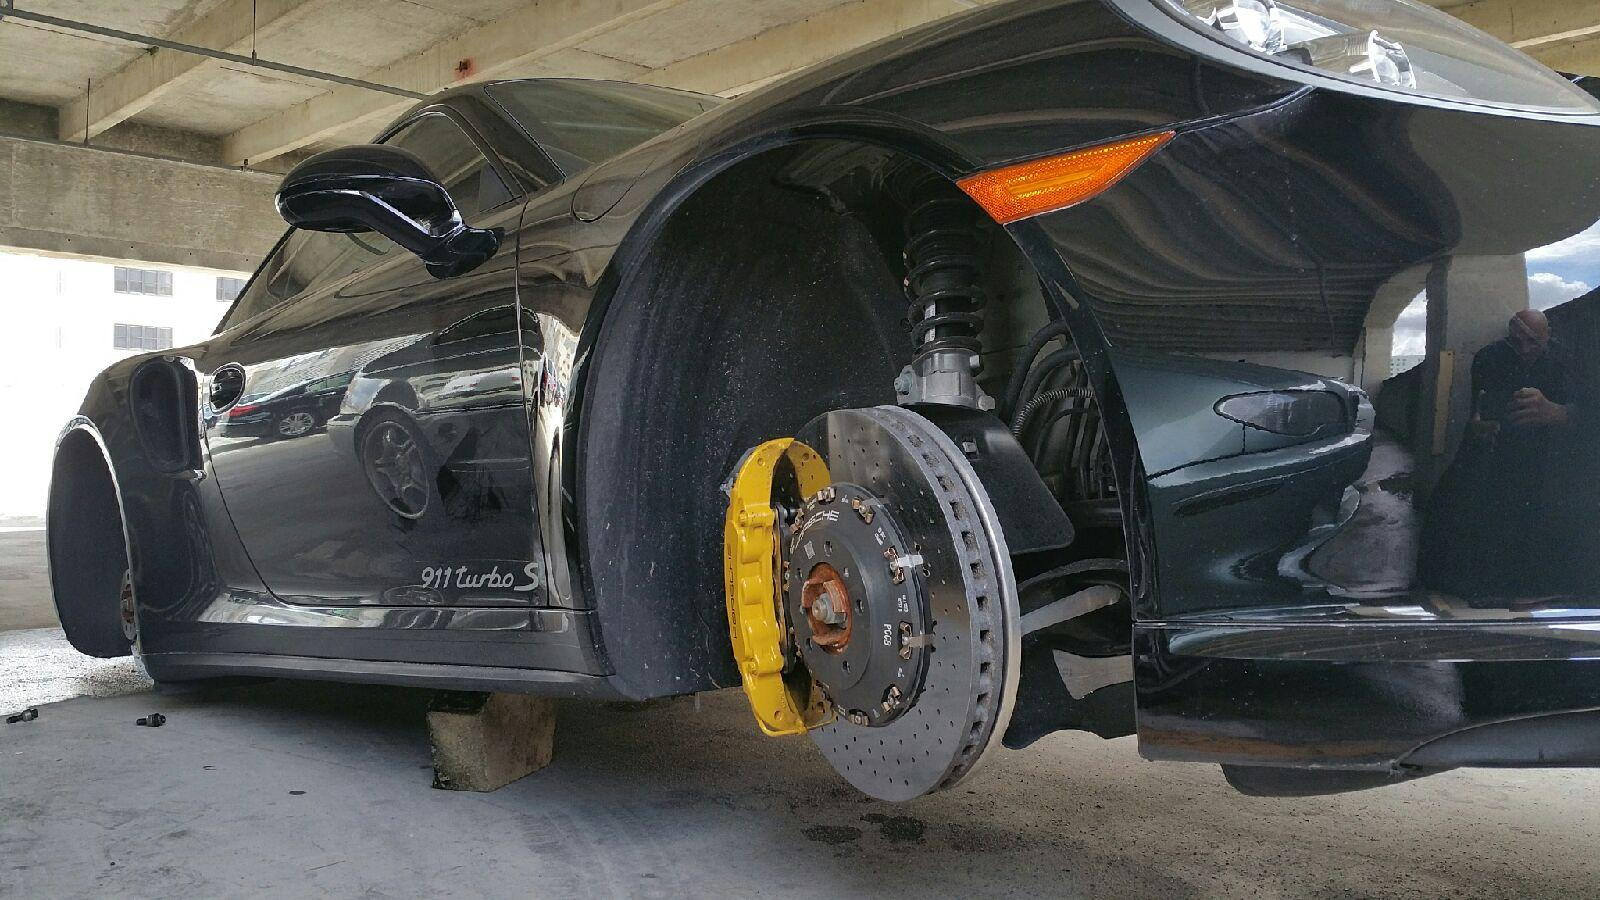 911uk com - Porsche Forum : View topic - Not what you want come back